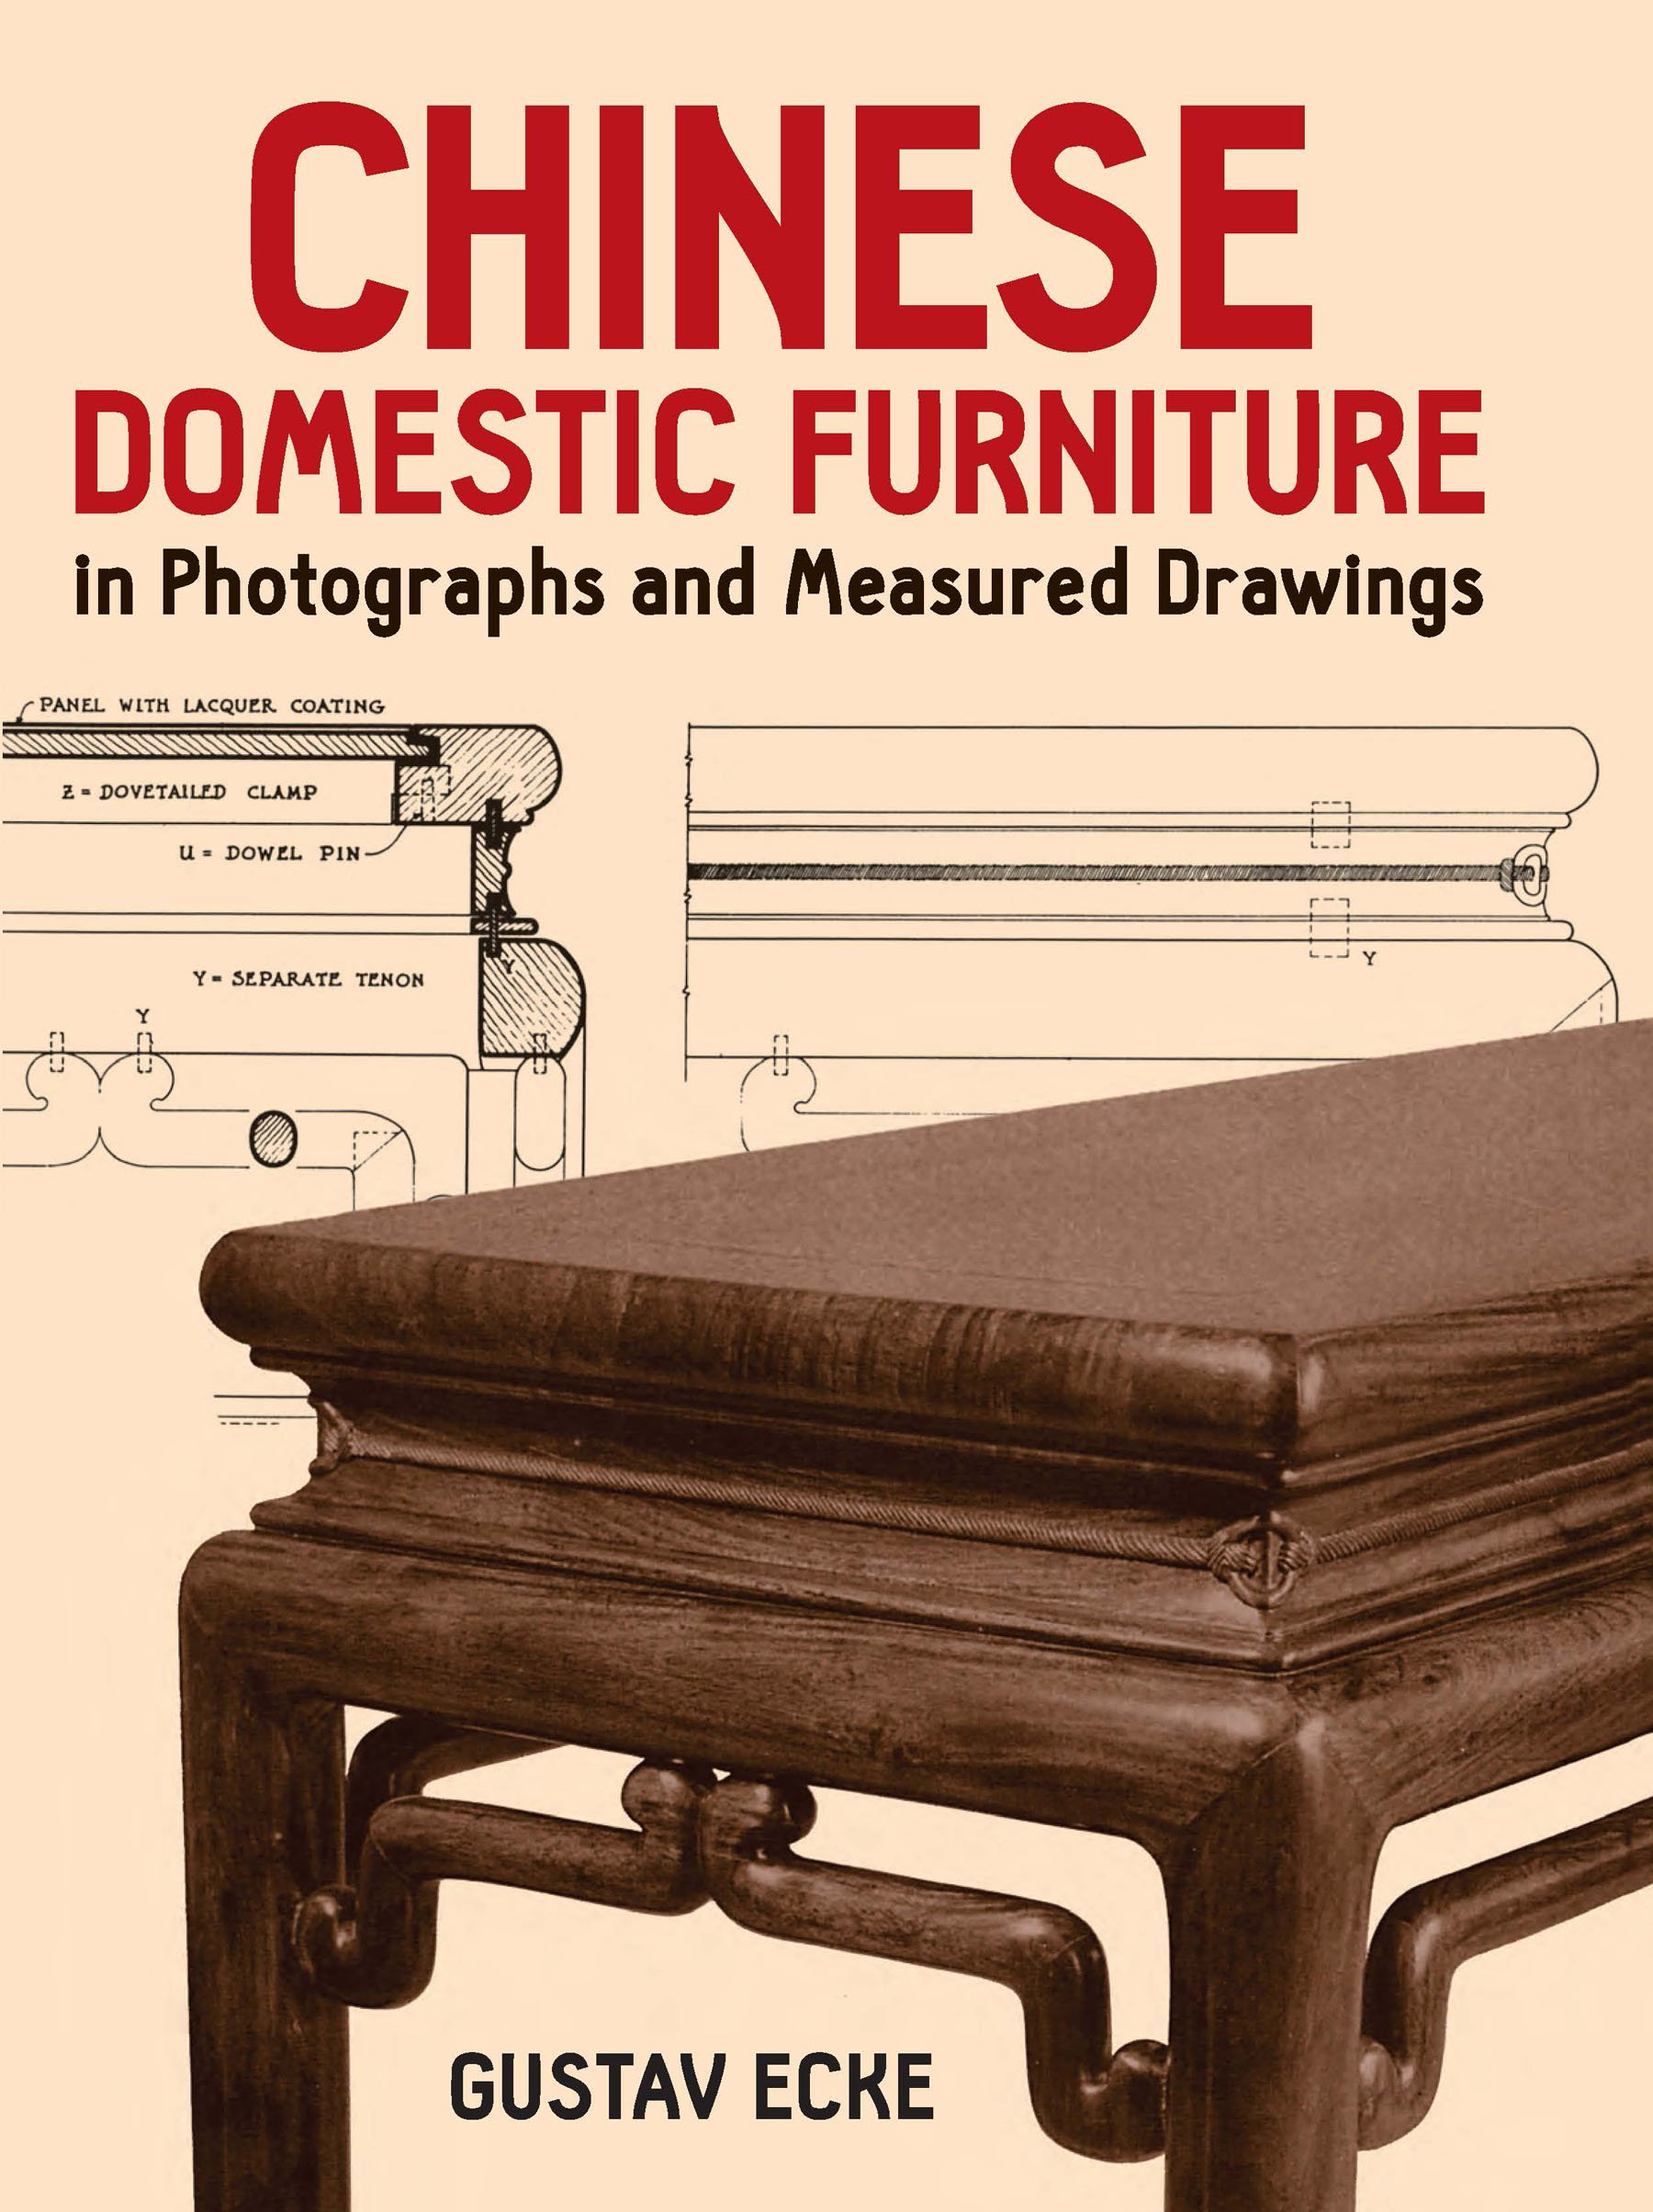 Chinese Domestic Furniture In Photographs And Measured Drawings  Dover Books On Furniture